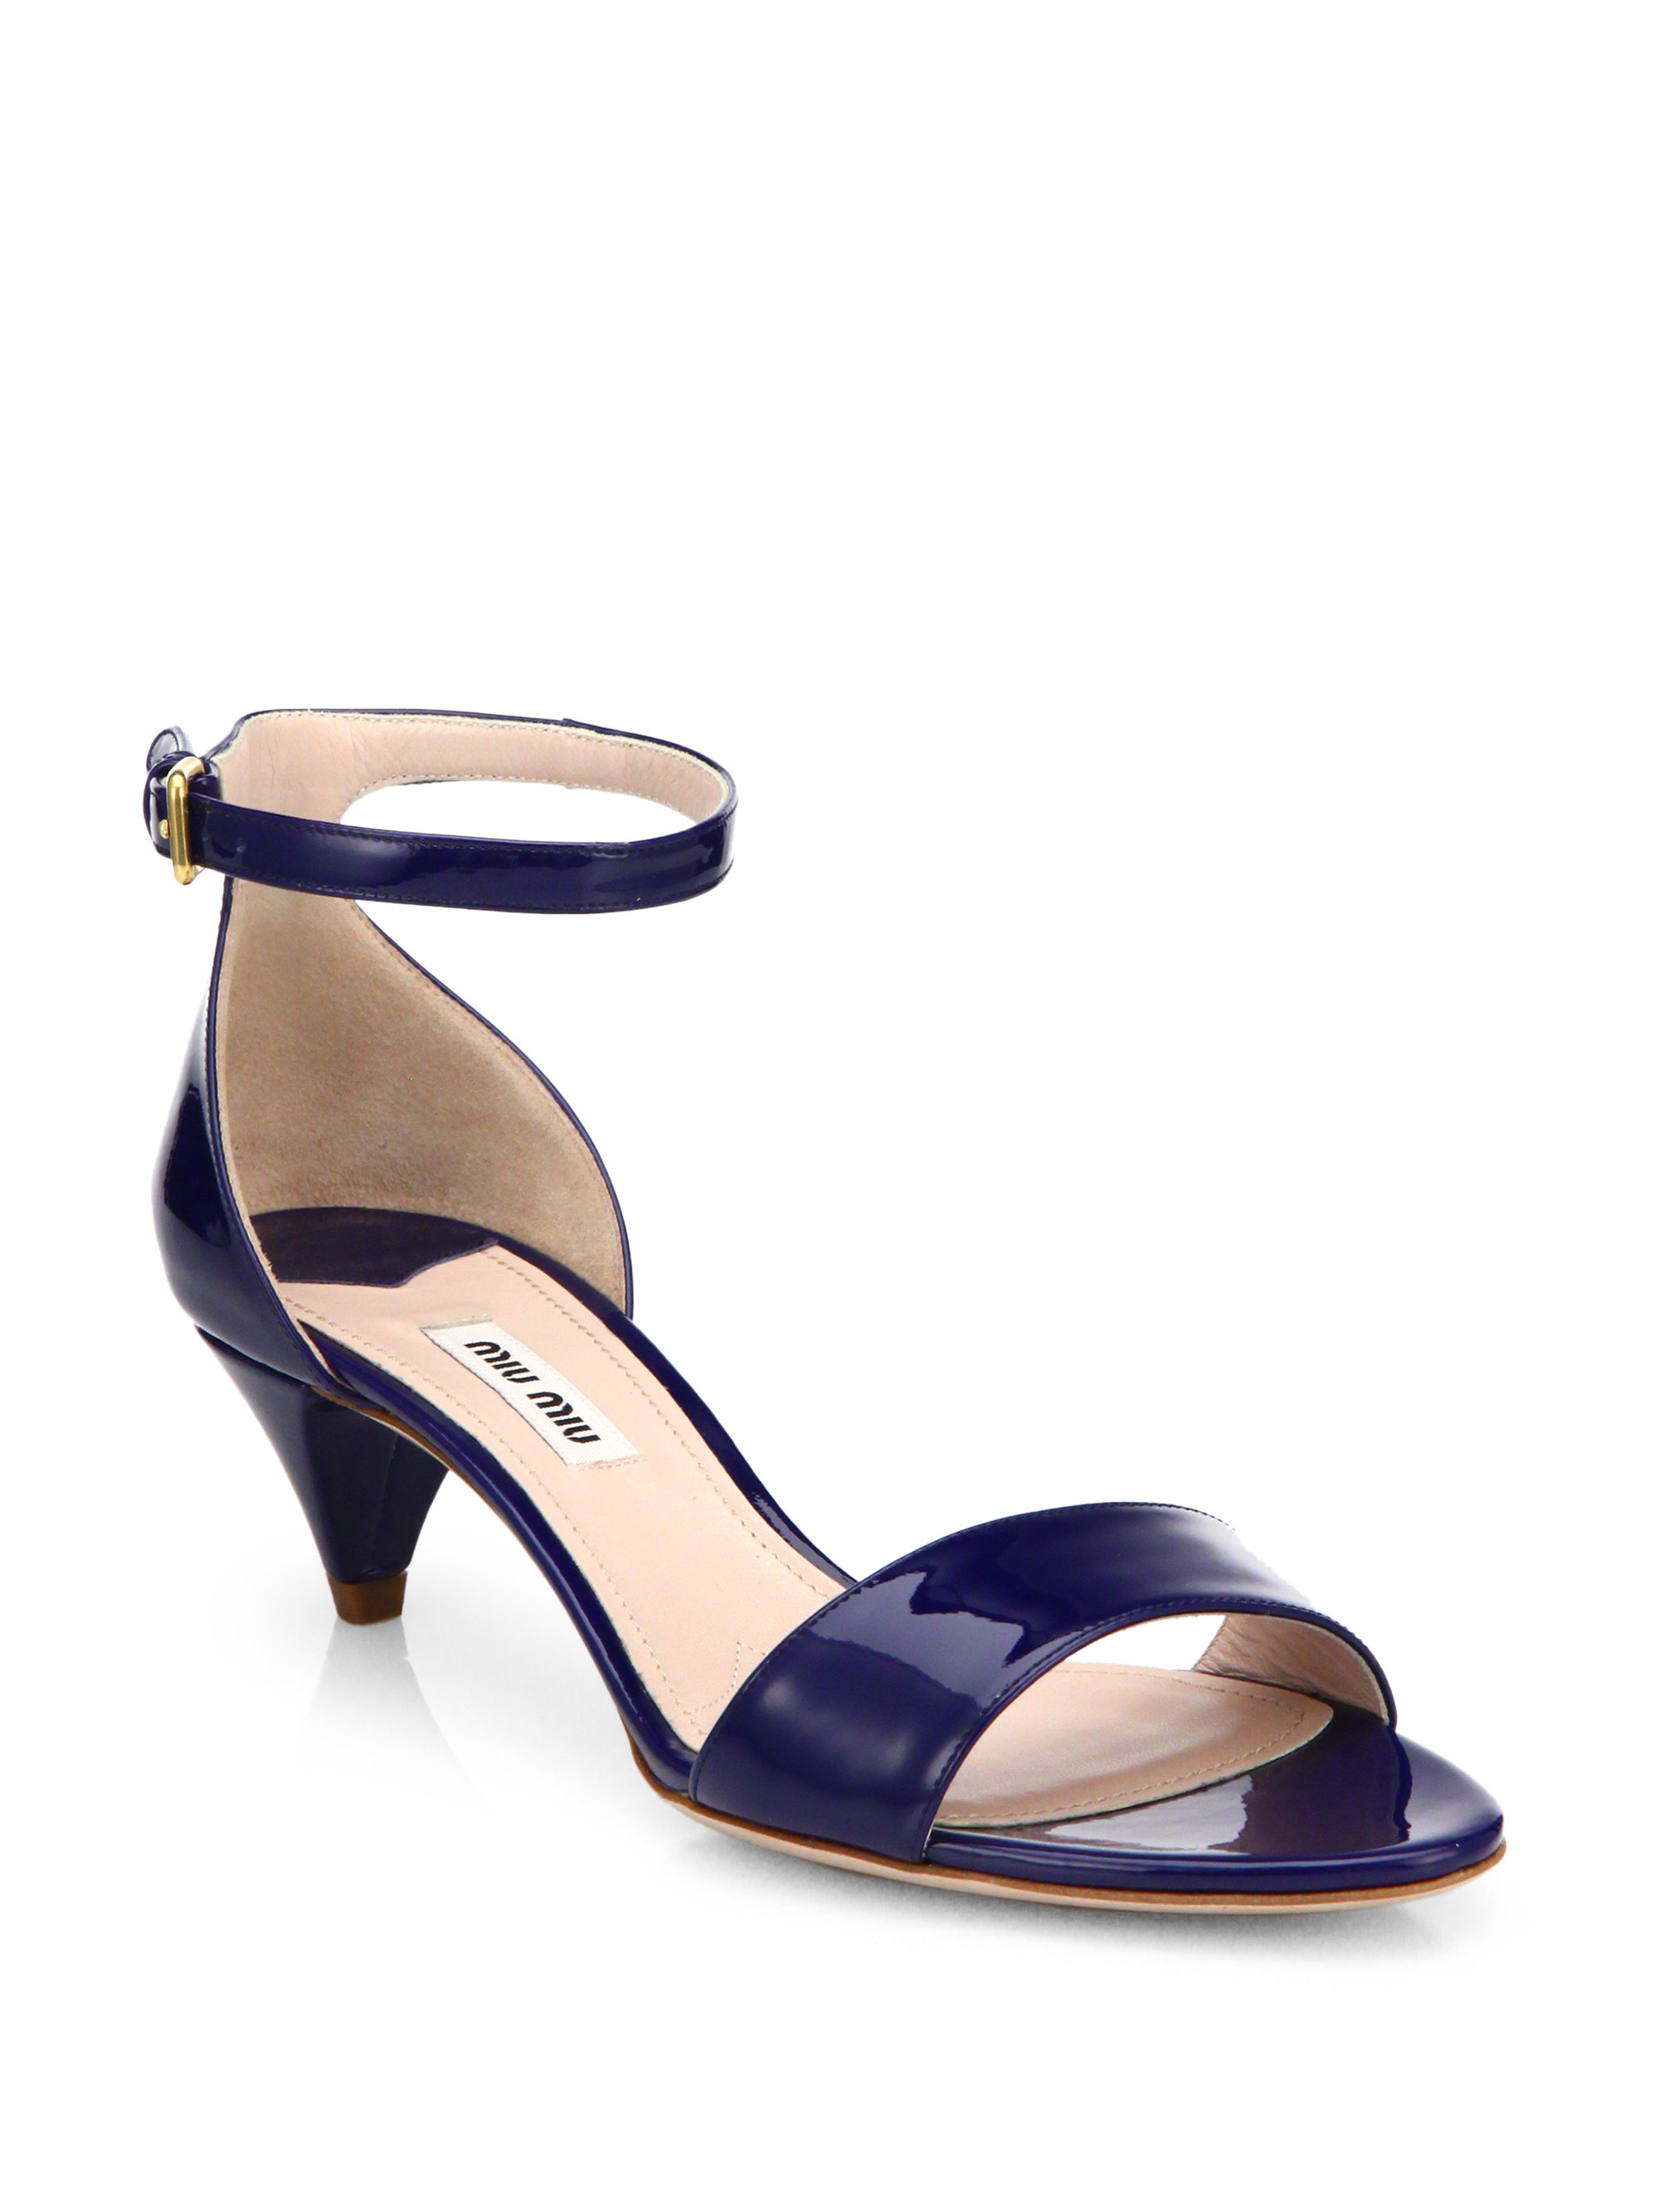 f344653cb94 Lyst - Miu Miu Patent Leather Kitten Heel Sandals in Blue